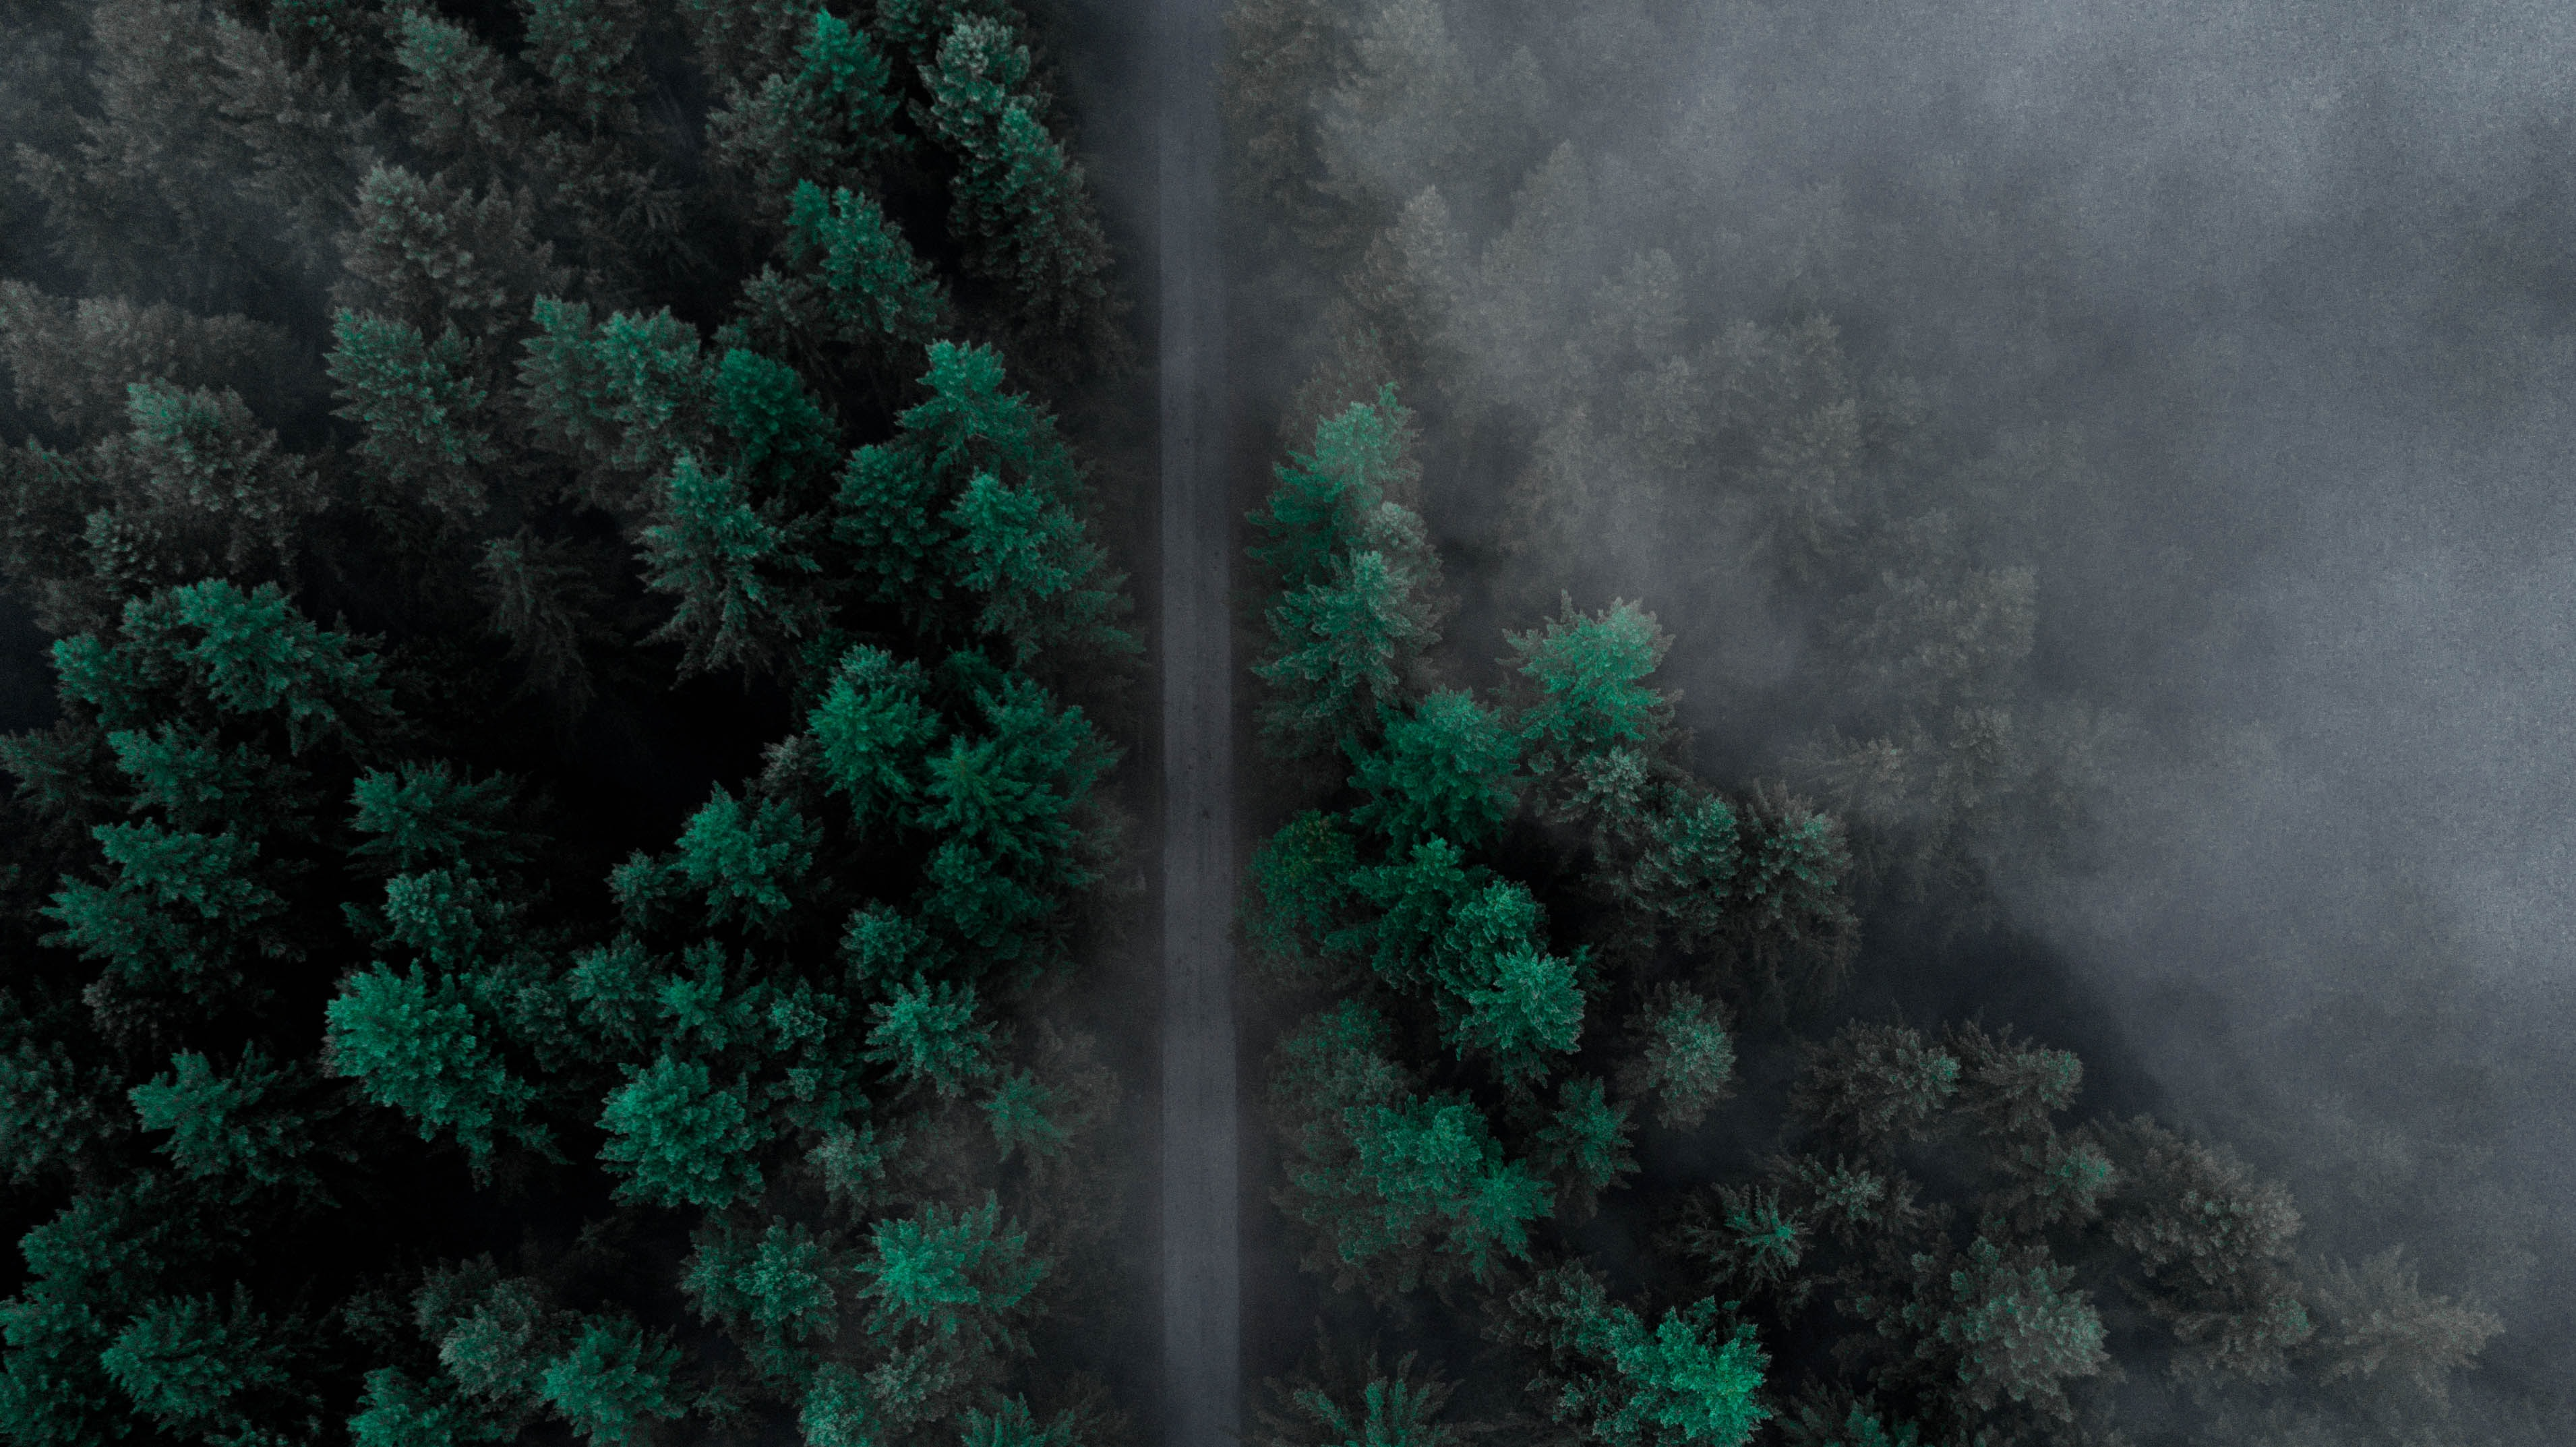 aerial photo of road surrounded by trees during daytime